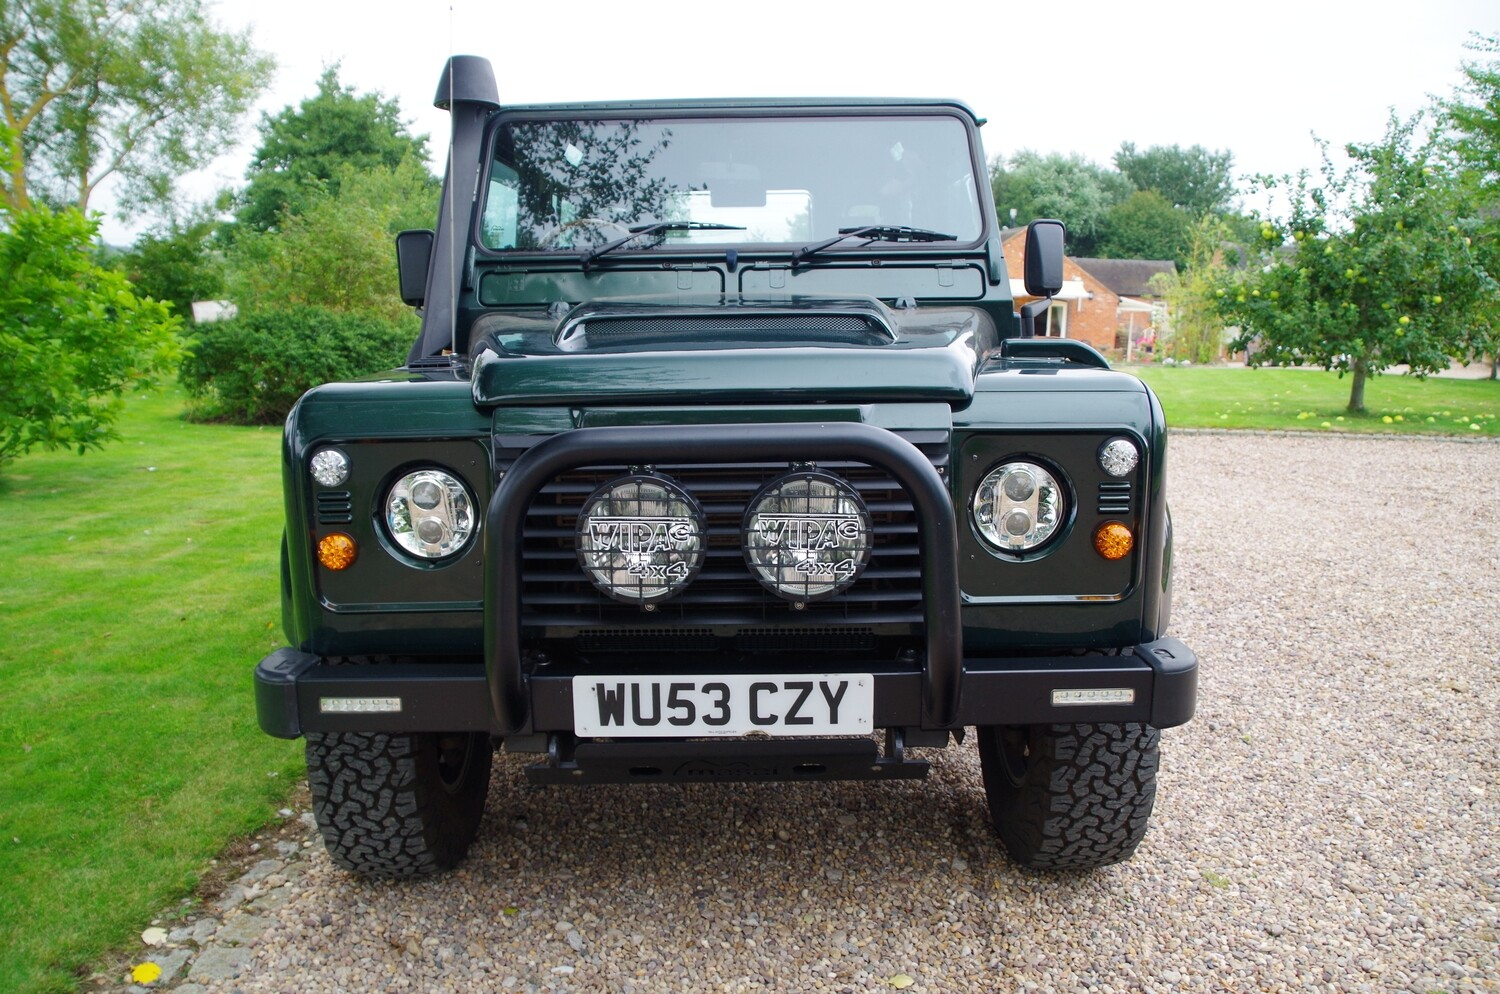 Stainless Steel Nudge Bar / A Bar - (Air Con ONLY) off-roading for Land Rover Defenders